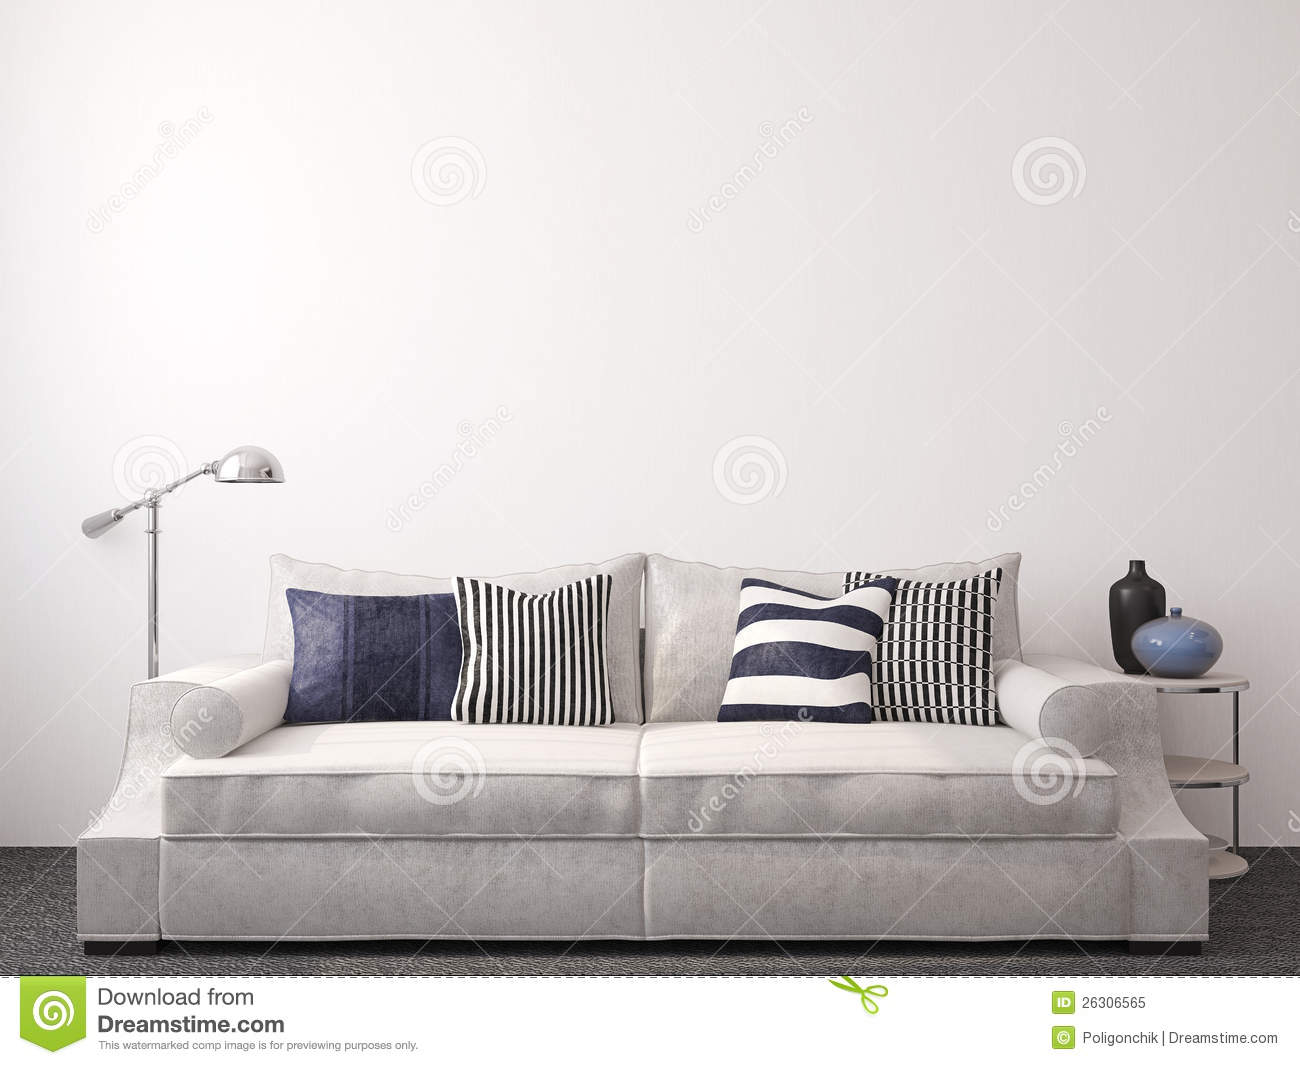 Half Sofa in addition Ing Grey Couches likewise Product 8 Piece Bedroom Suite 1004 additionally Sectional Sofa Light Grey additionally Ideas Black And White Chairs Living Room. on grey leather living room set